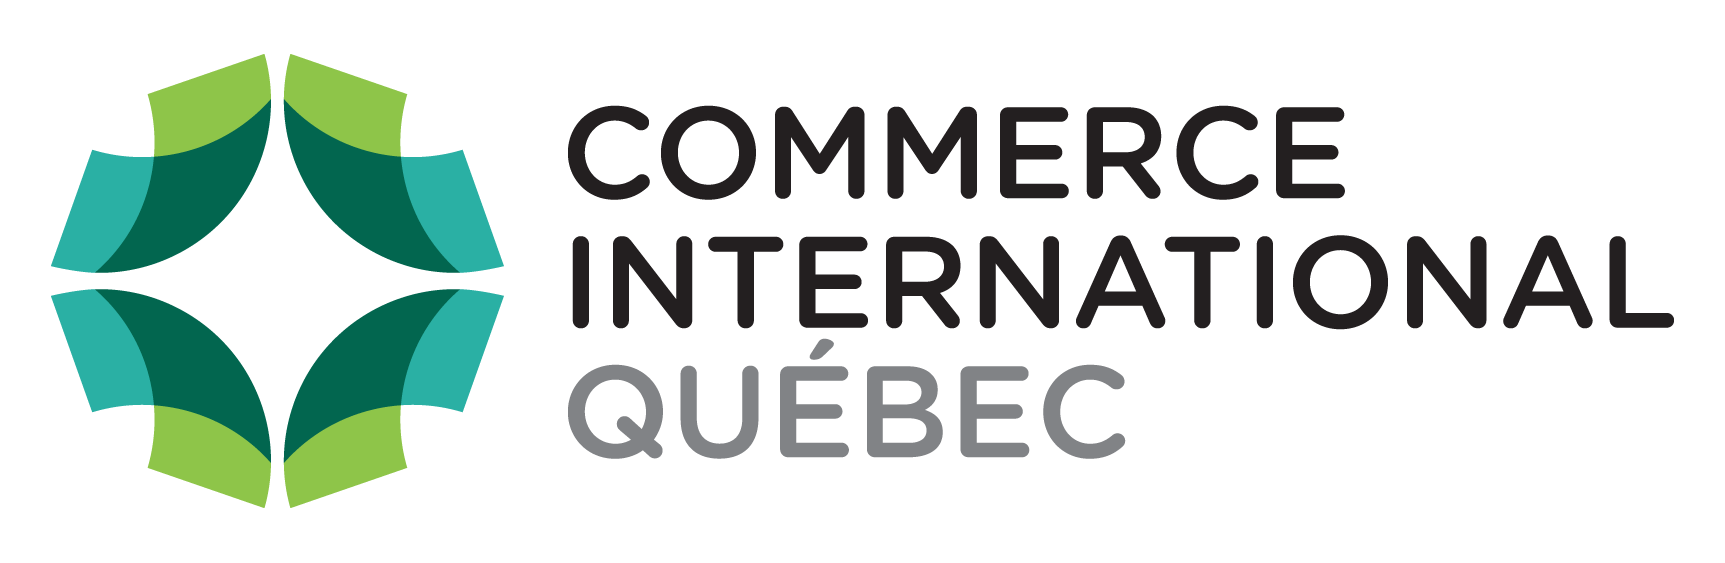 Commerce International Québec